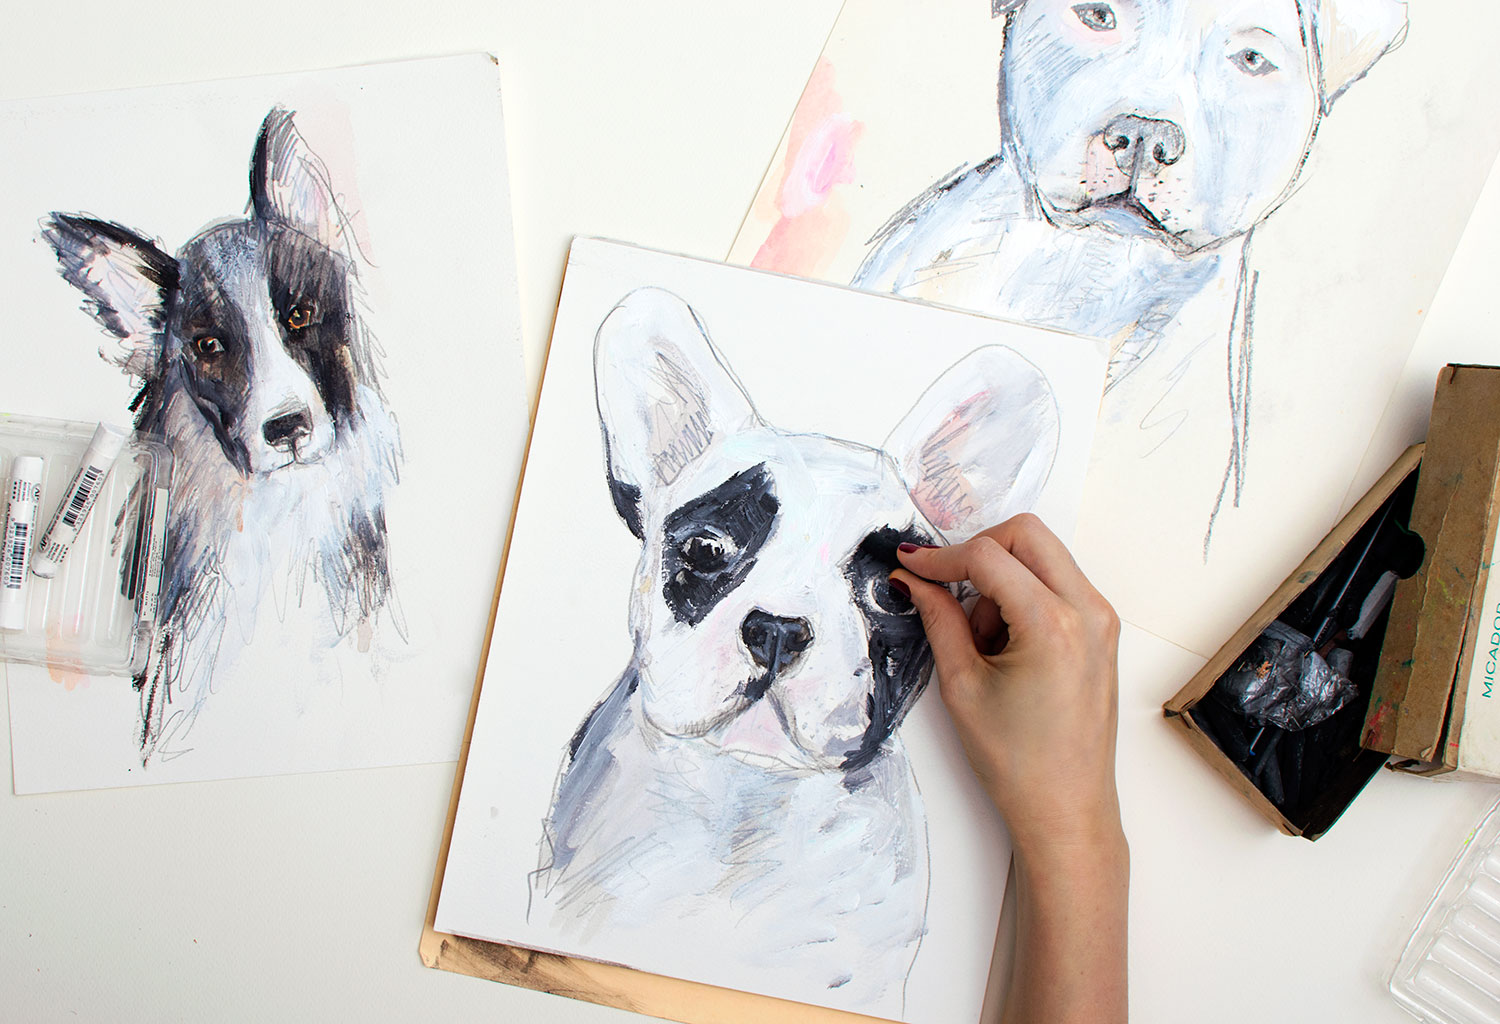 Artist work in progress drawings of dog portraits in charcoal, pencil and pastels.